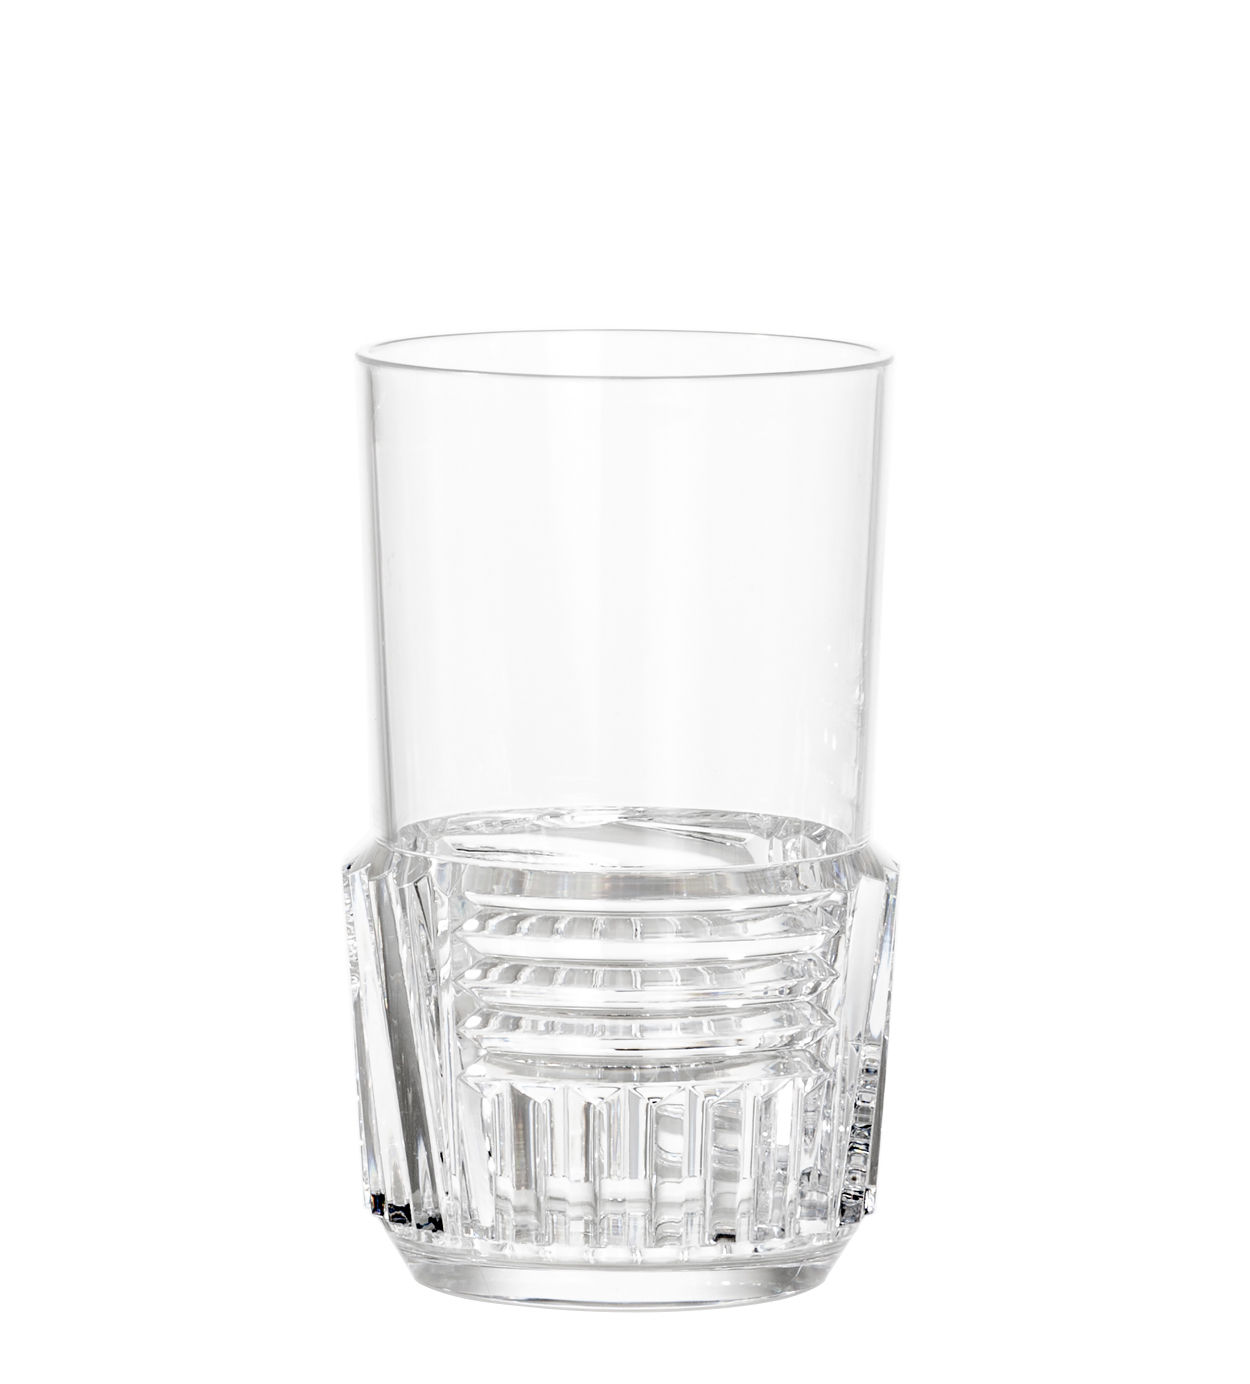 Tableware - Wine Glasses & Glassware - Trama Large Glass - / H 15 cm by Kartell - Crystal - Technopolymer